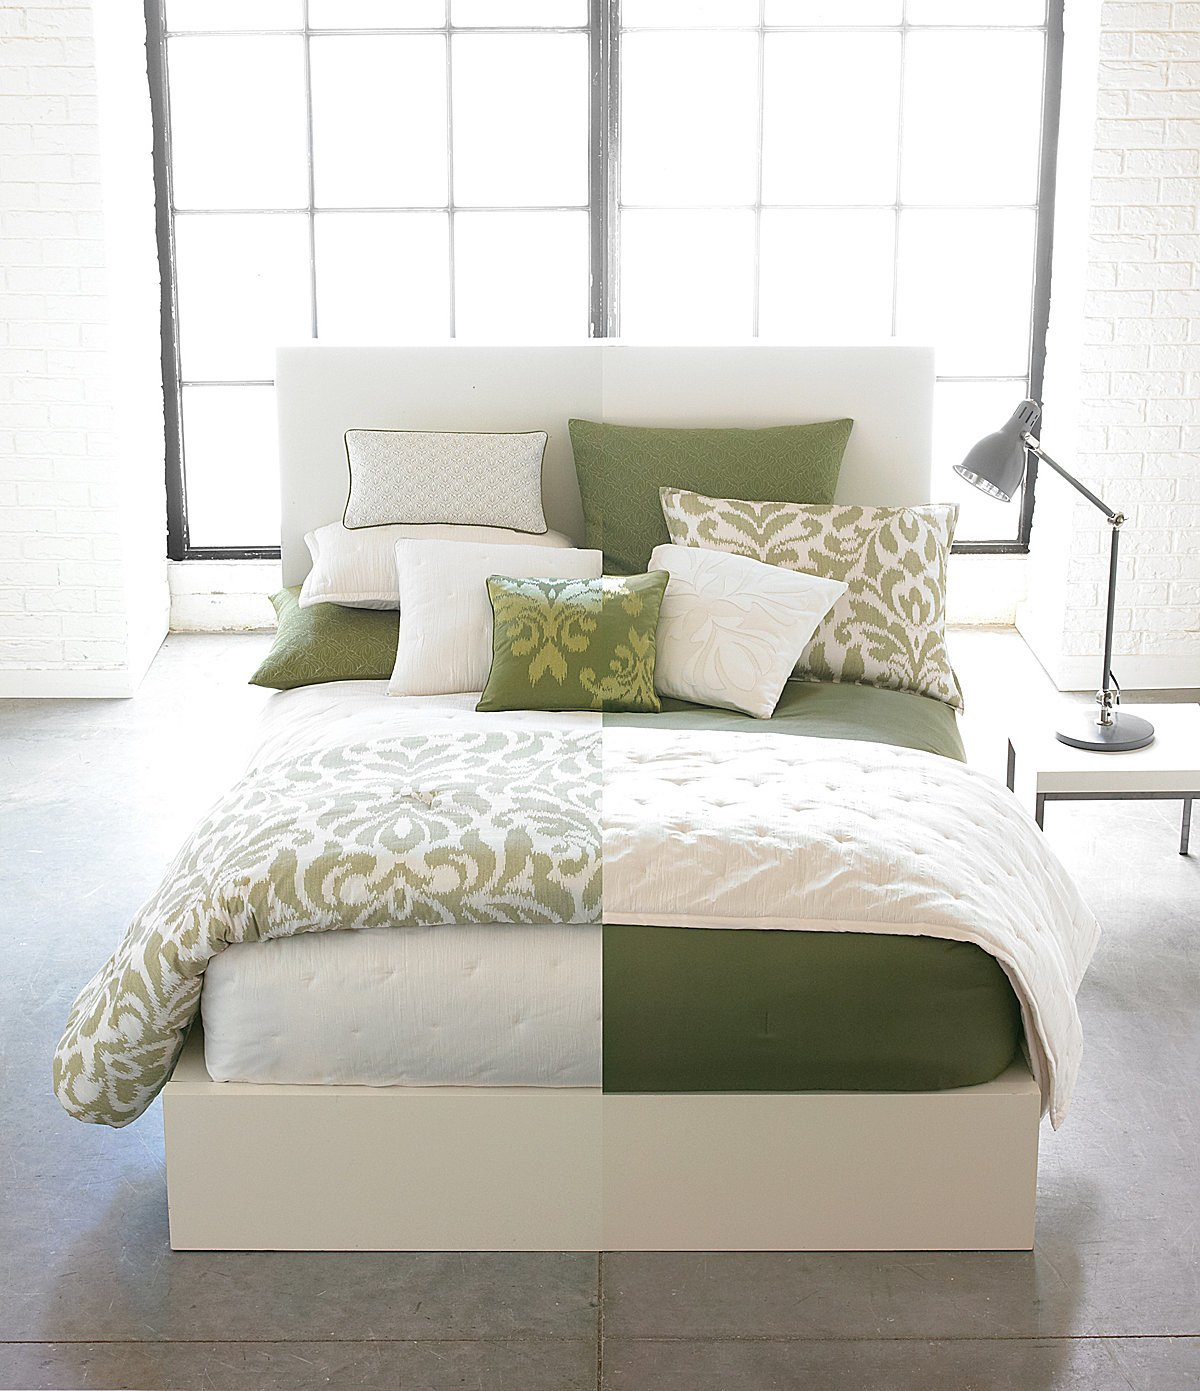 Best Modern Furniture 2013 Candice Olson Bedding Collection With Pictures